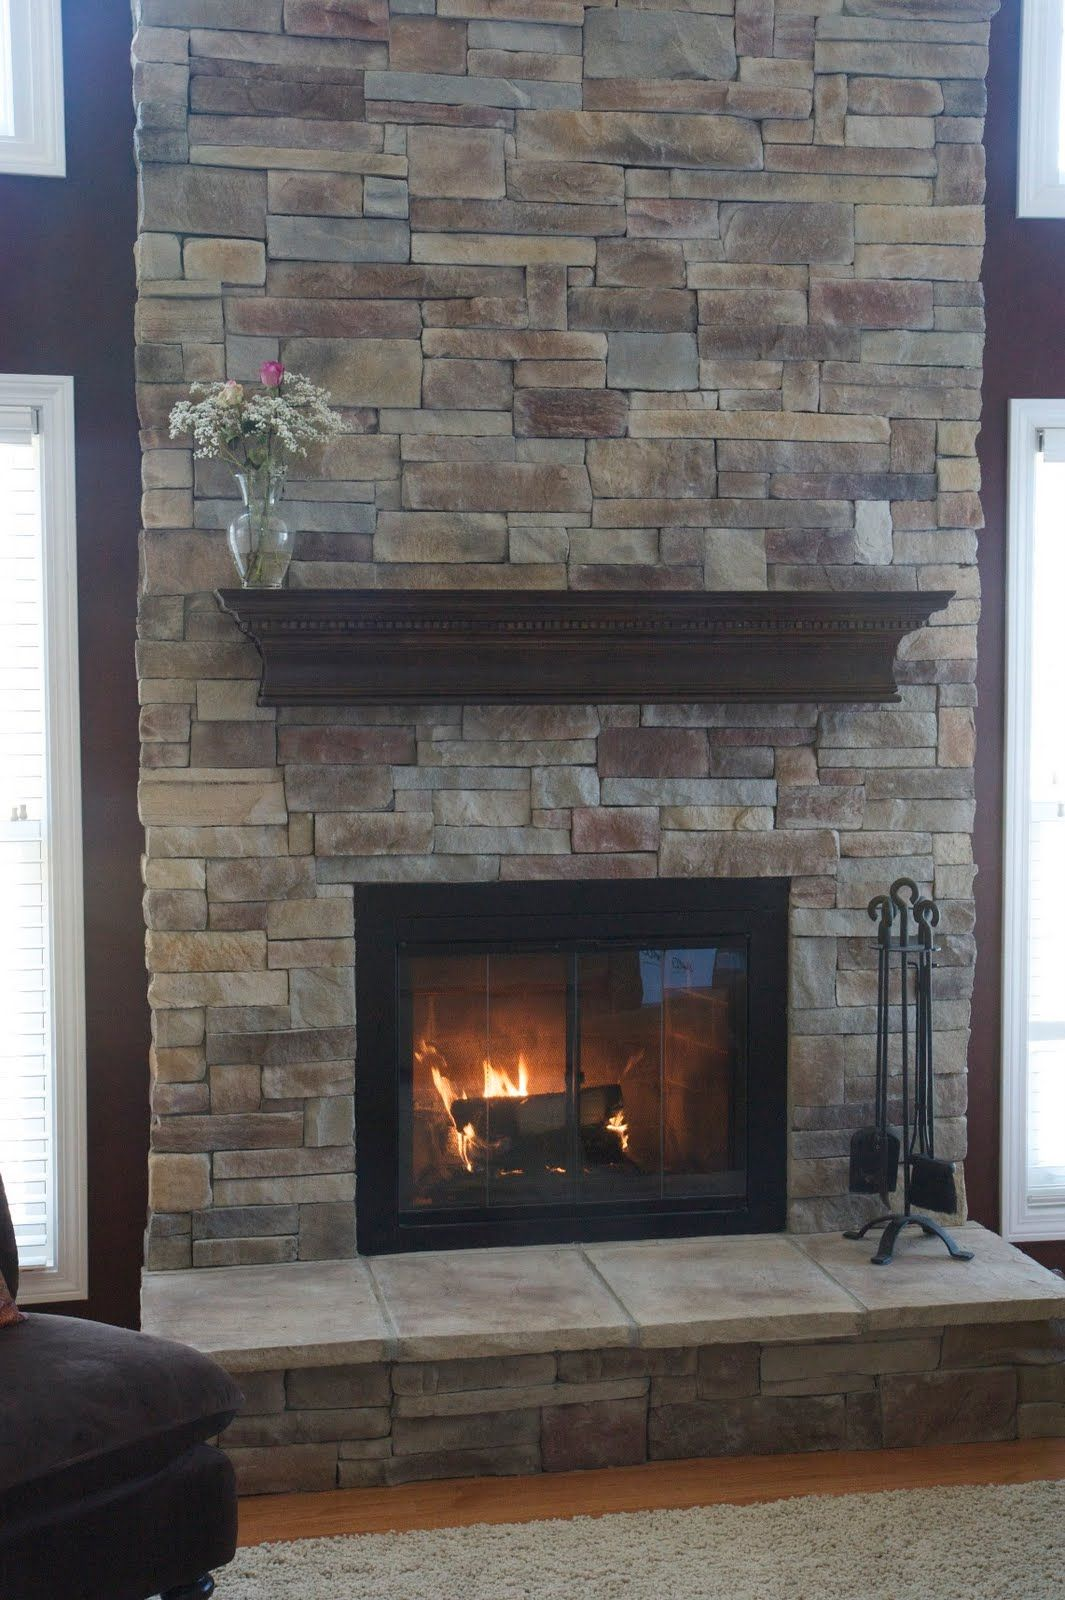 North star stone stone fireplaces u stone exteriors did you know